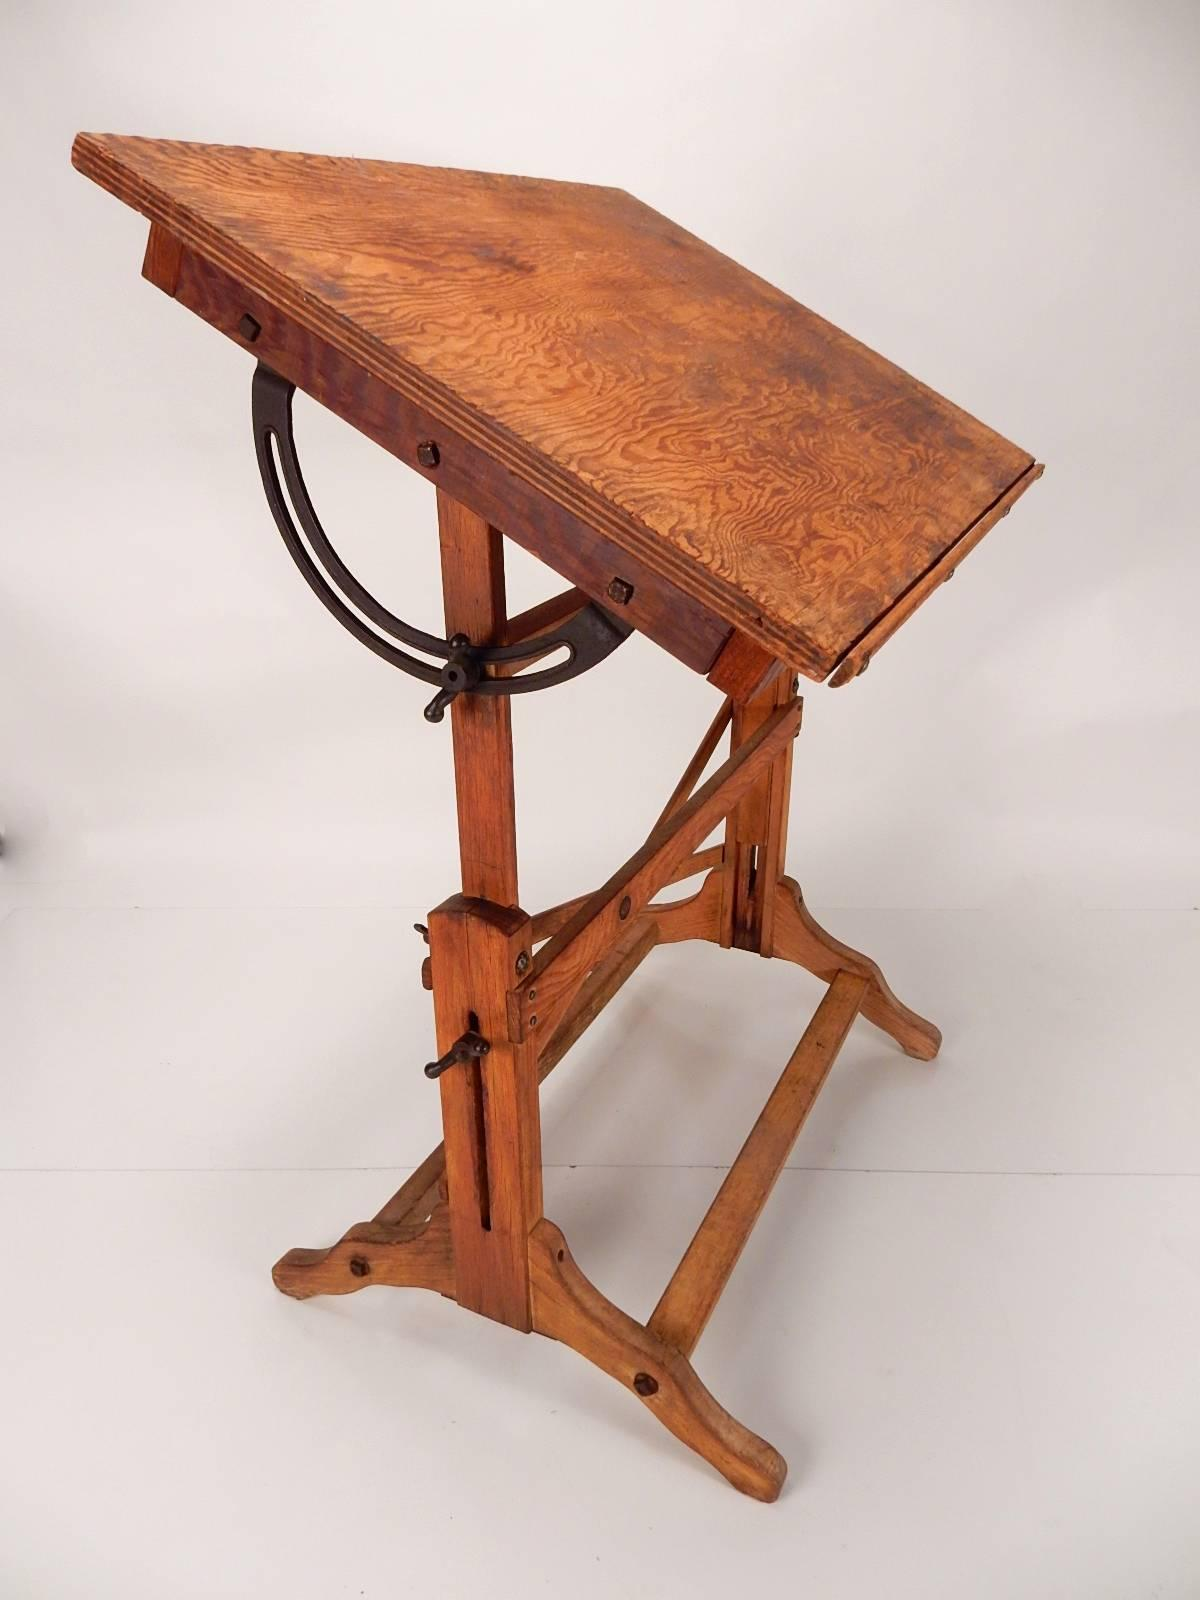 Superbe Small Scale Drafting Table By Post Drafting Materials, Circa 1930s.  Completely Original And